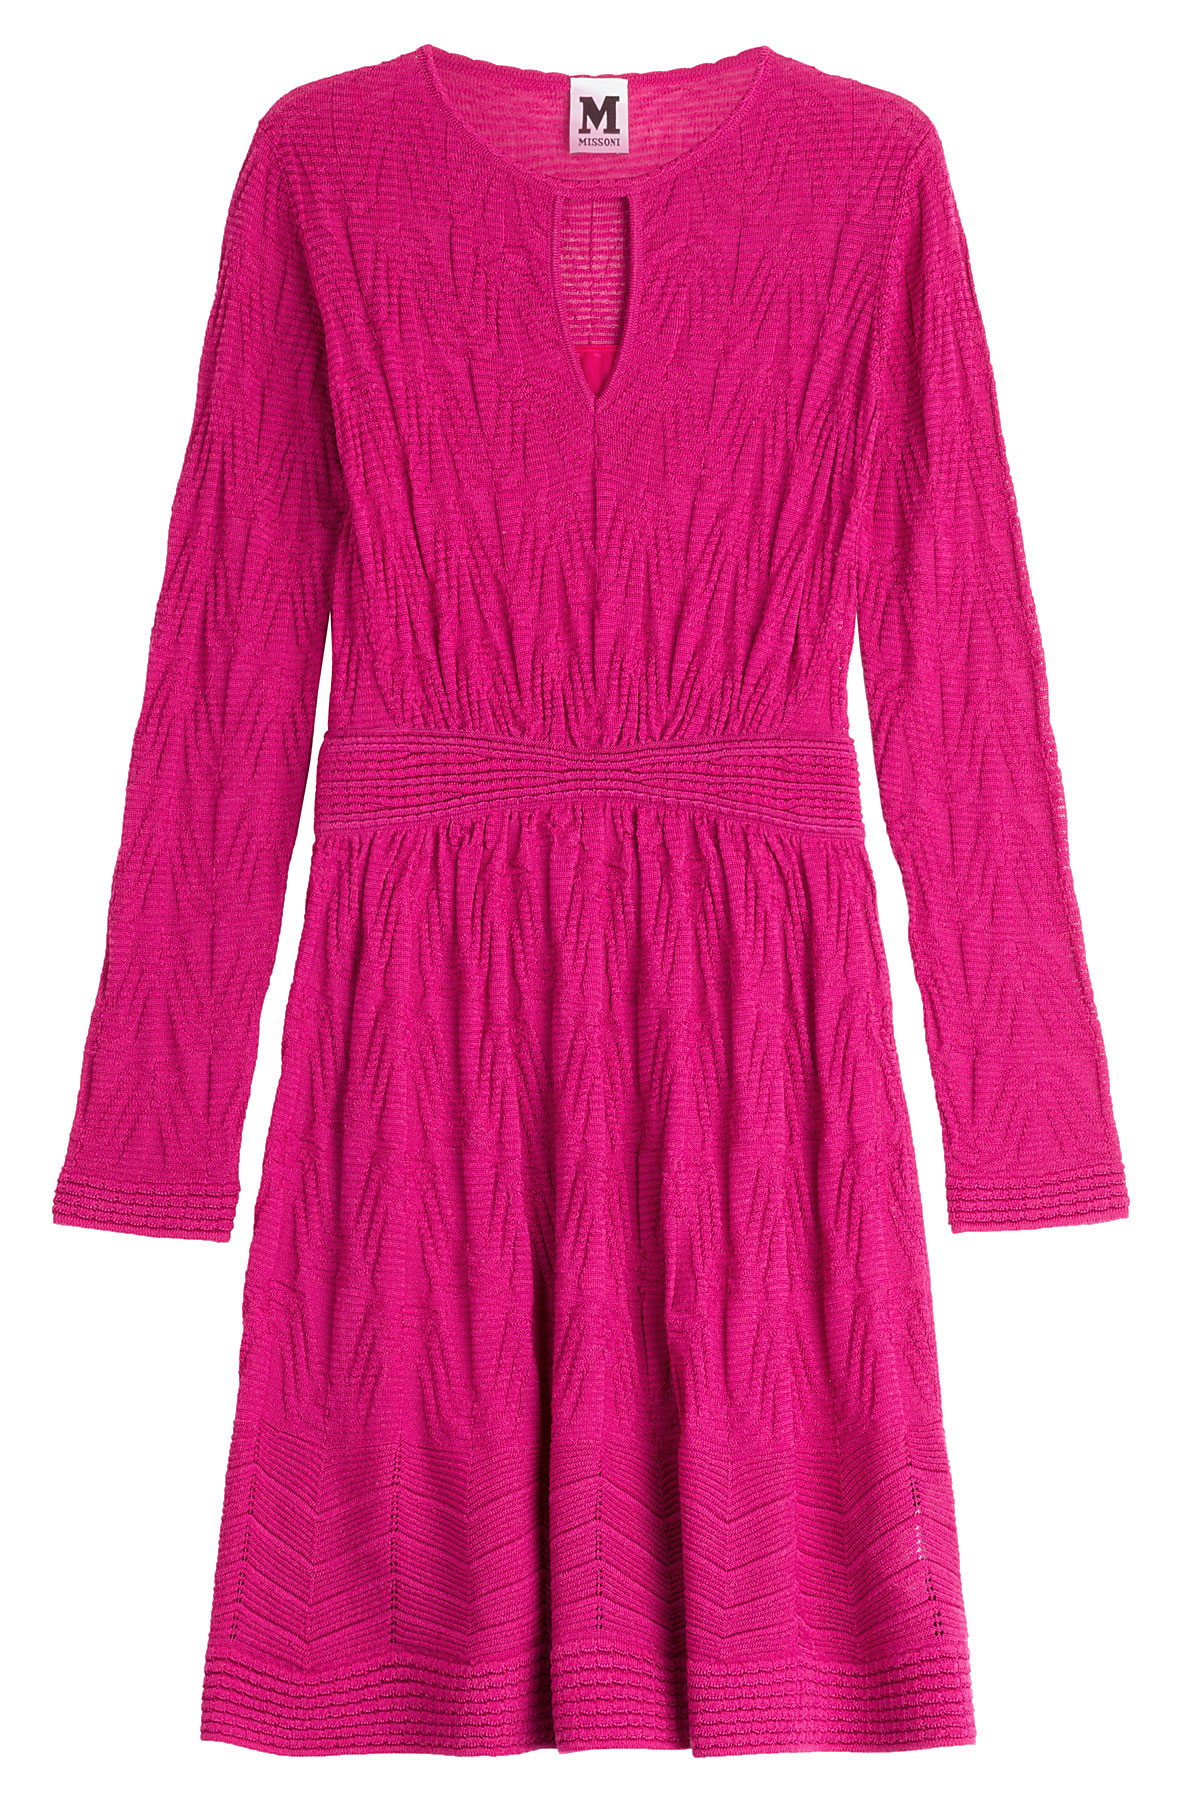 M missoni Knitted Dress With Wool - Pink in Pink Lyst